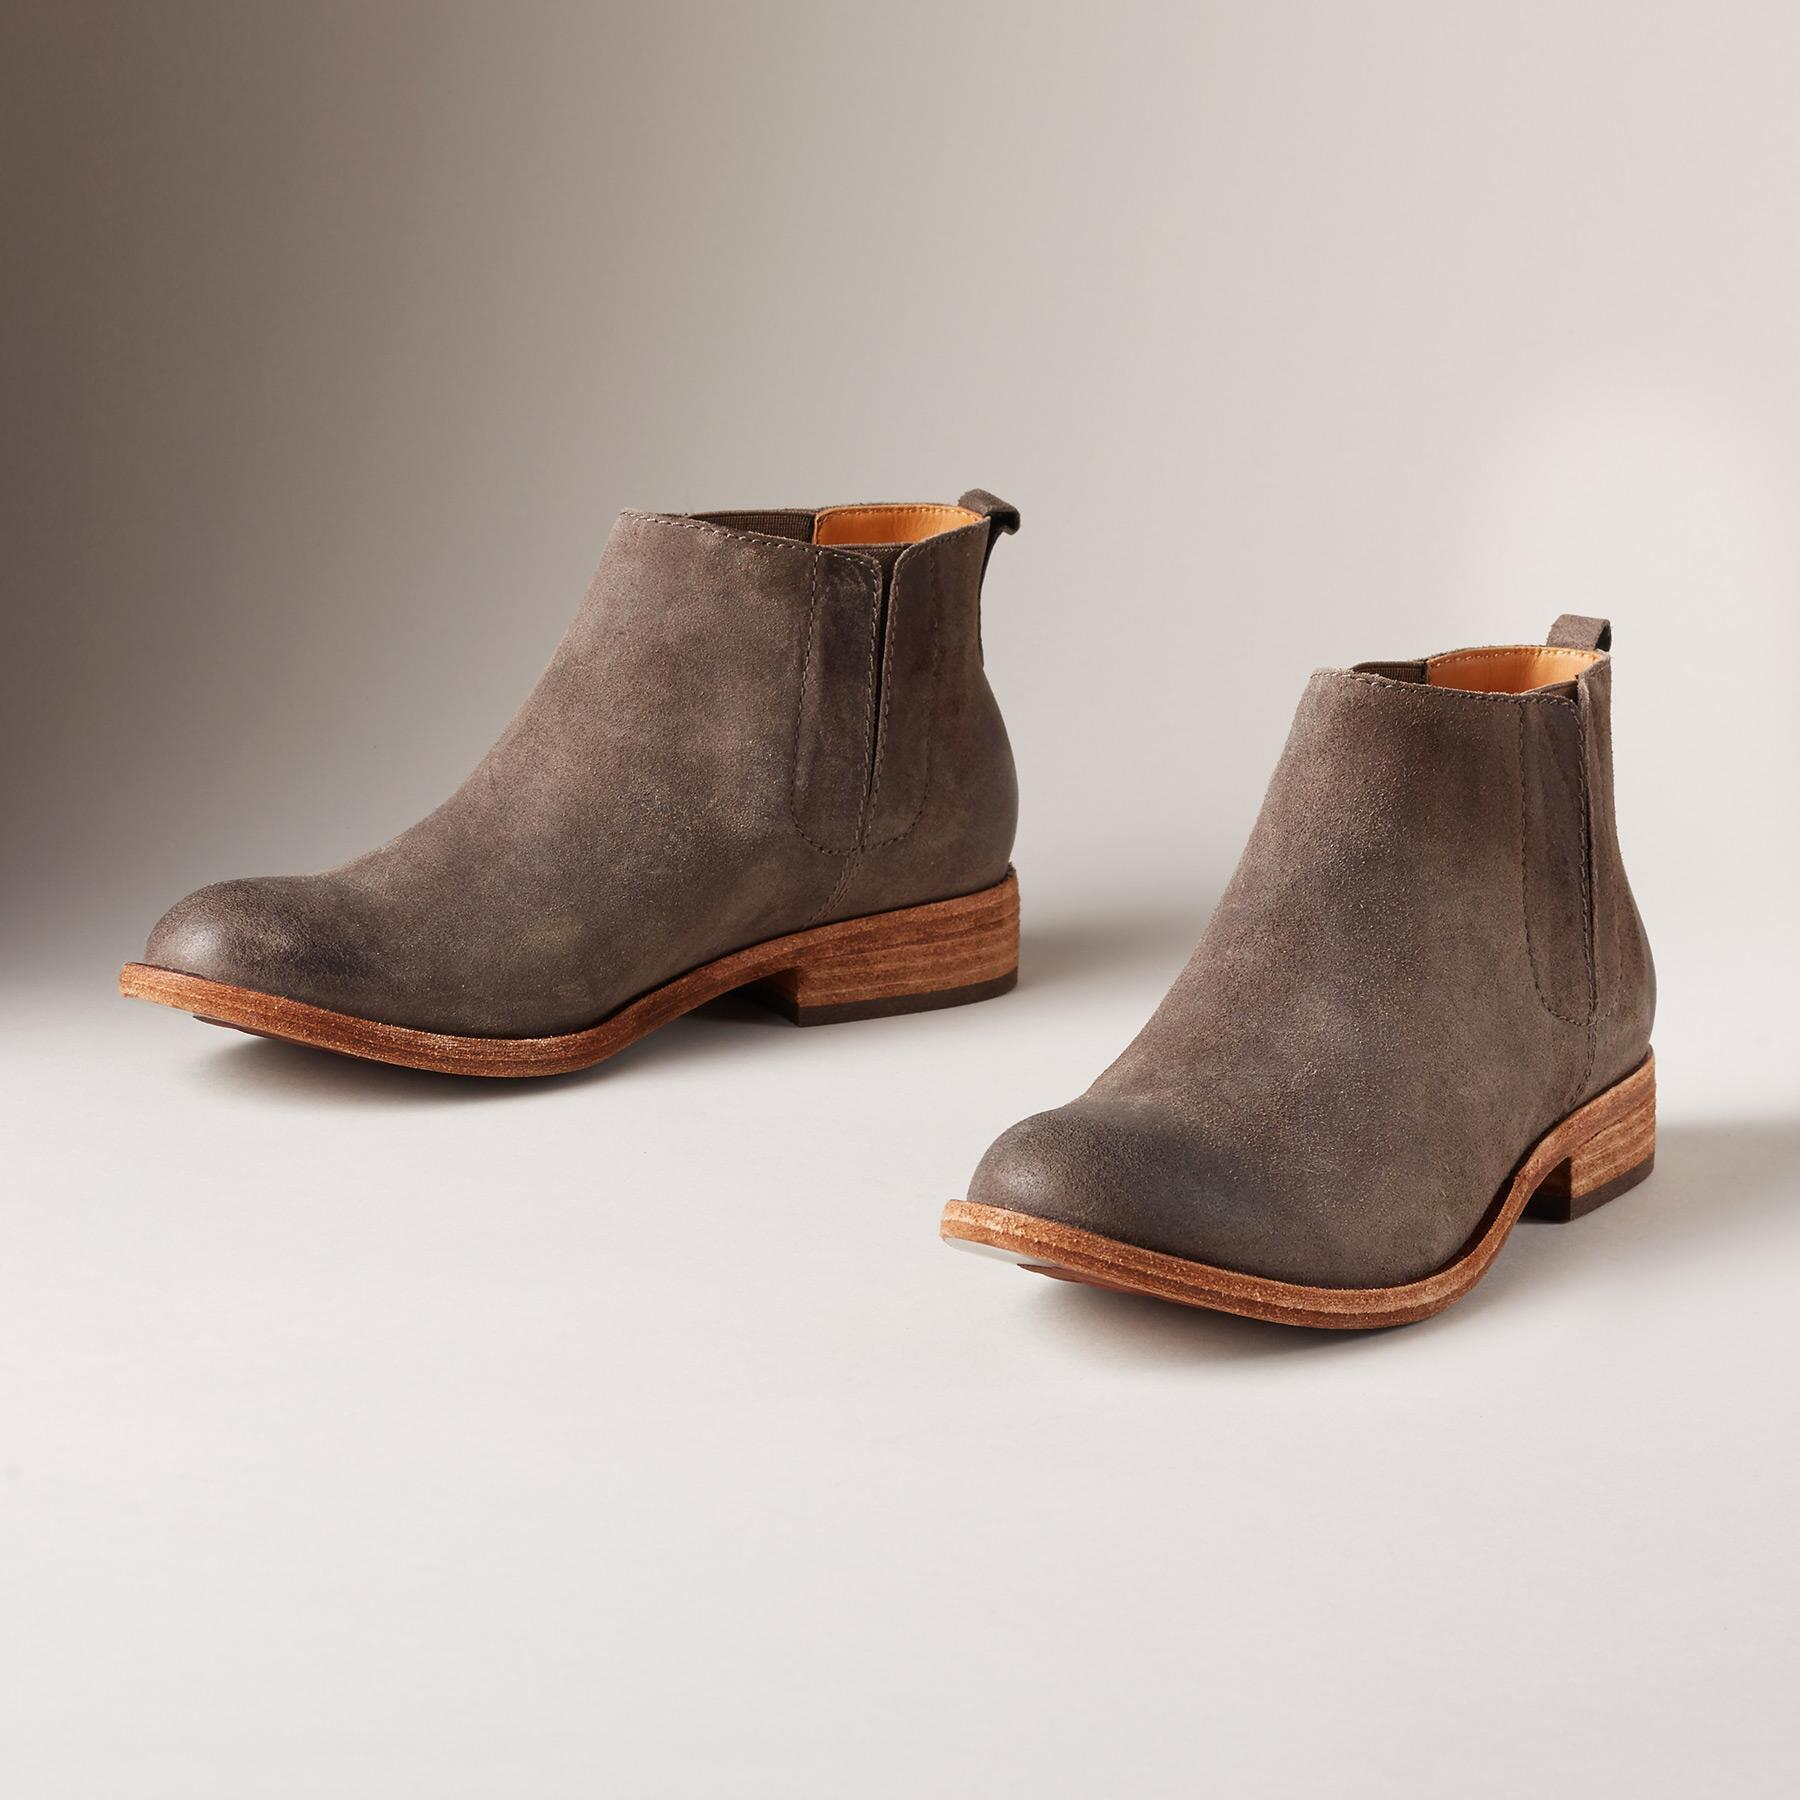 Kork-Ease Velma Suede Boots